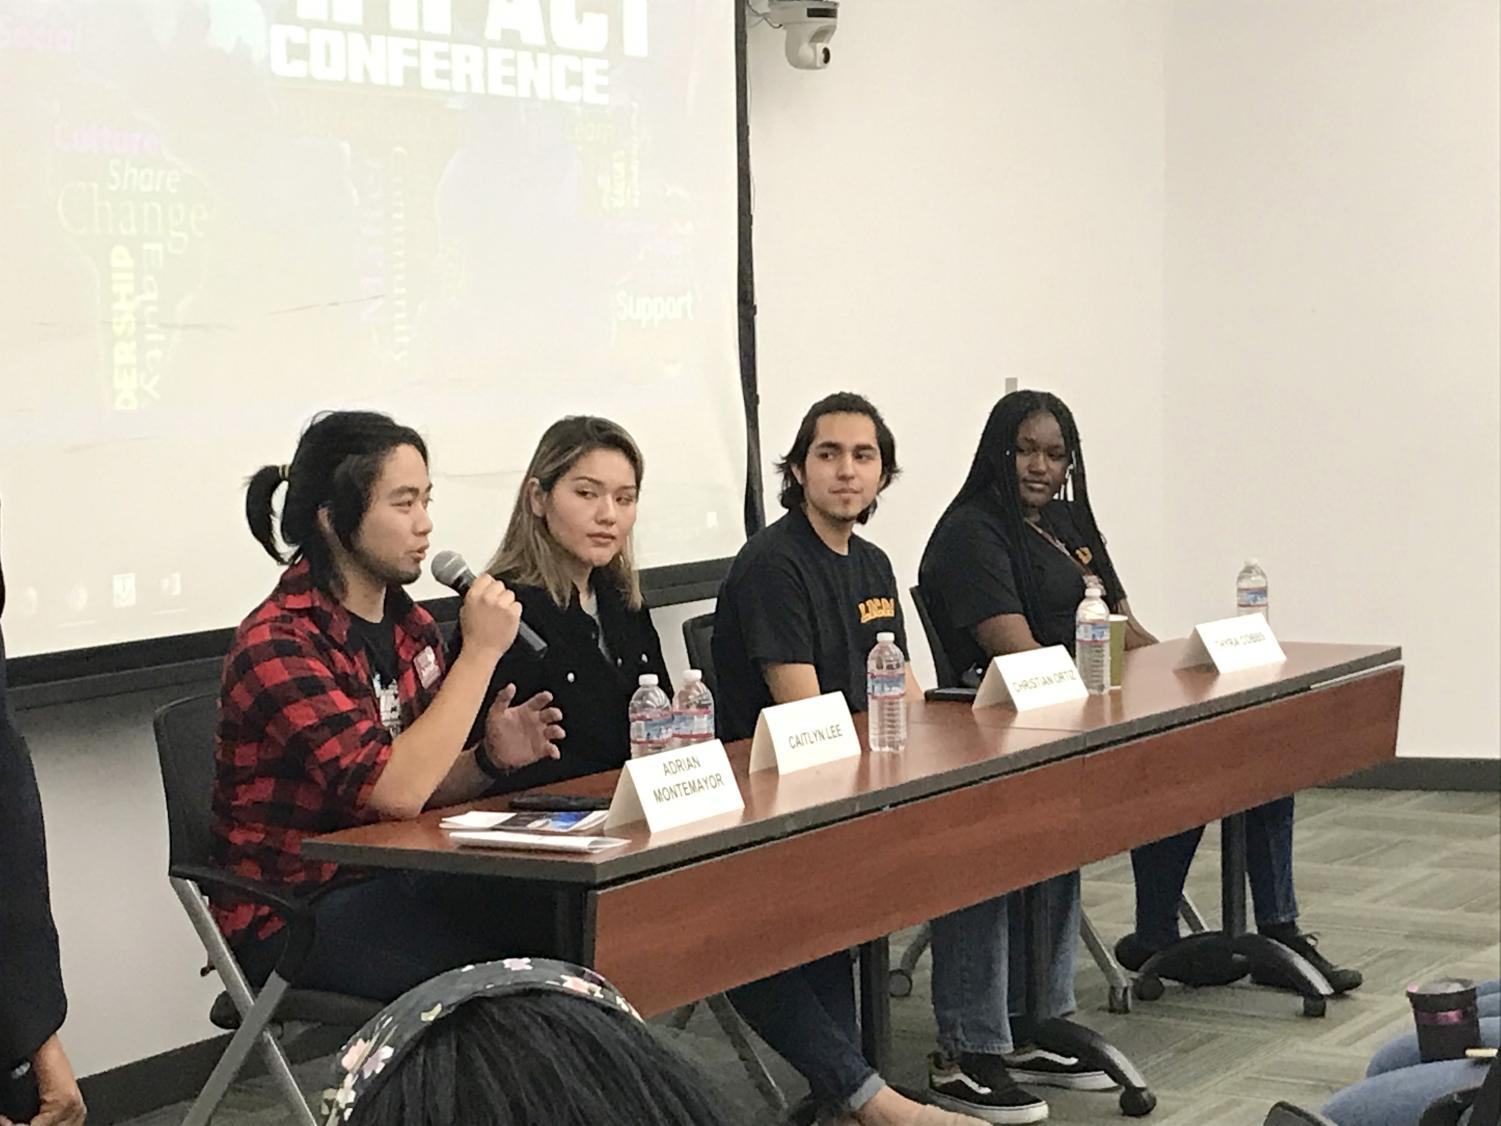 Student leaders Adrian Montemayor, Caitlyn Lee, Christian Ortiz and Thyra Cobbs were panelists at the Impact Conference that took phace Thursday, Oct. 17 and Friday, Oct. 18.